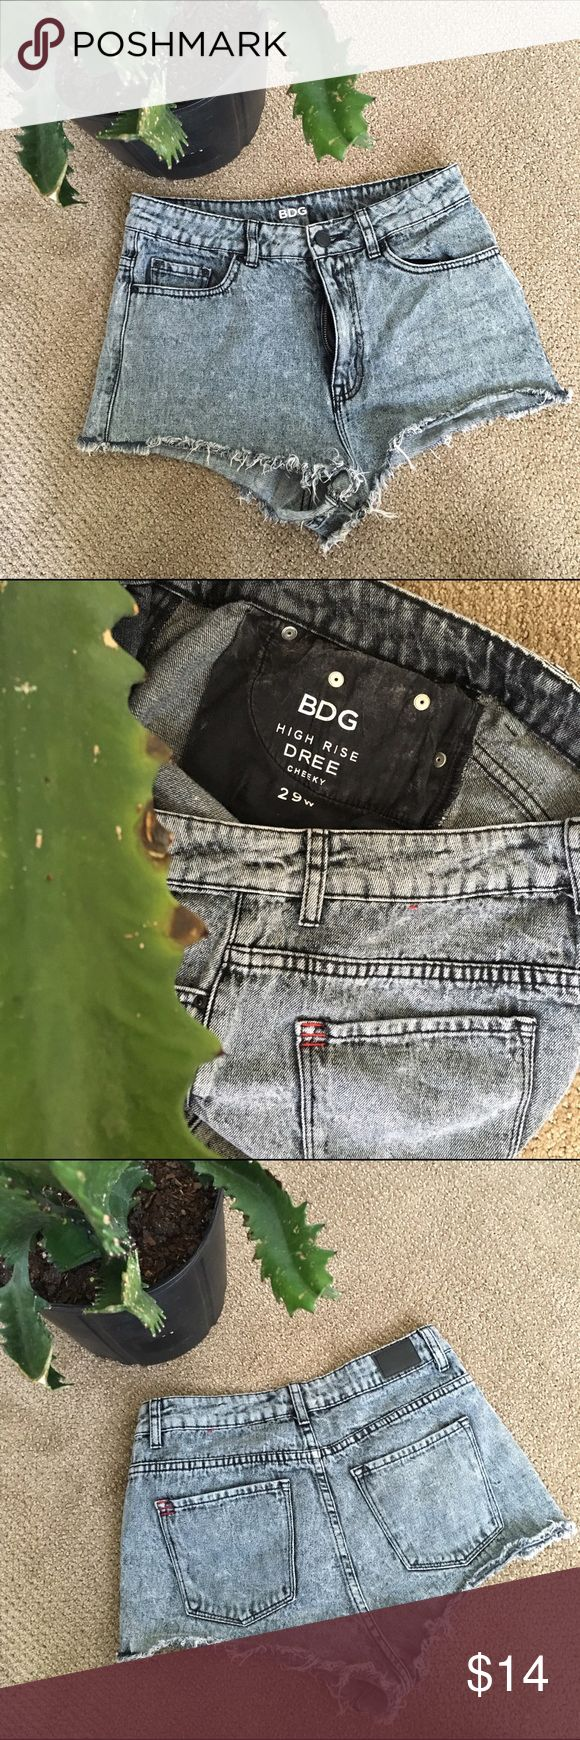 BDG Acid Wash Shorts Dolphin cut acid wash short shorts by BDG for Urban Outfitters. Barely worn, in excellent condition. Just a little too cheeky for me 🙃 Feel free to ask any questions! ✨🌜 Urban Outfitters Shorts Jean Shorts